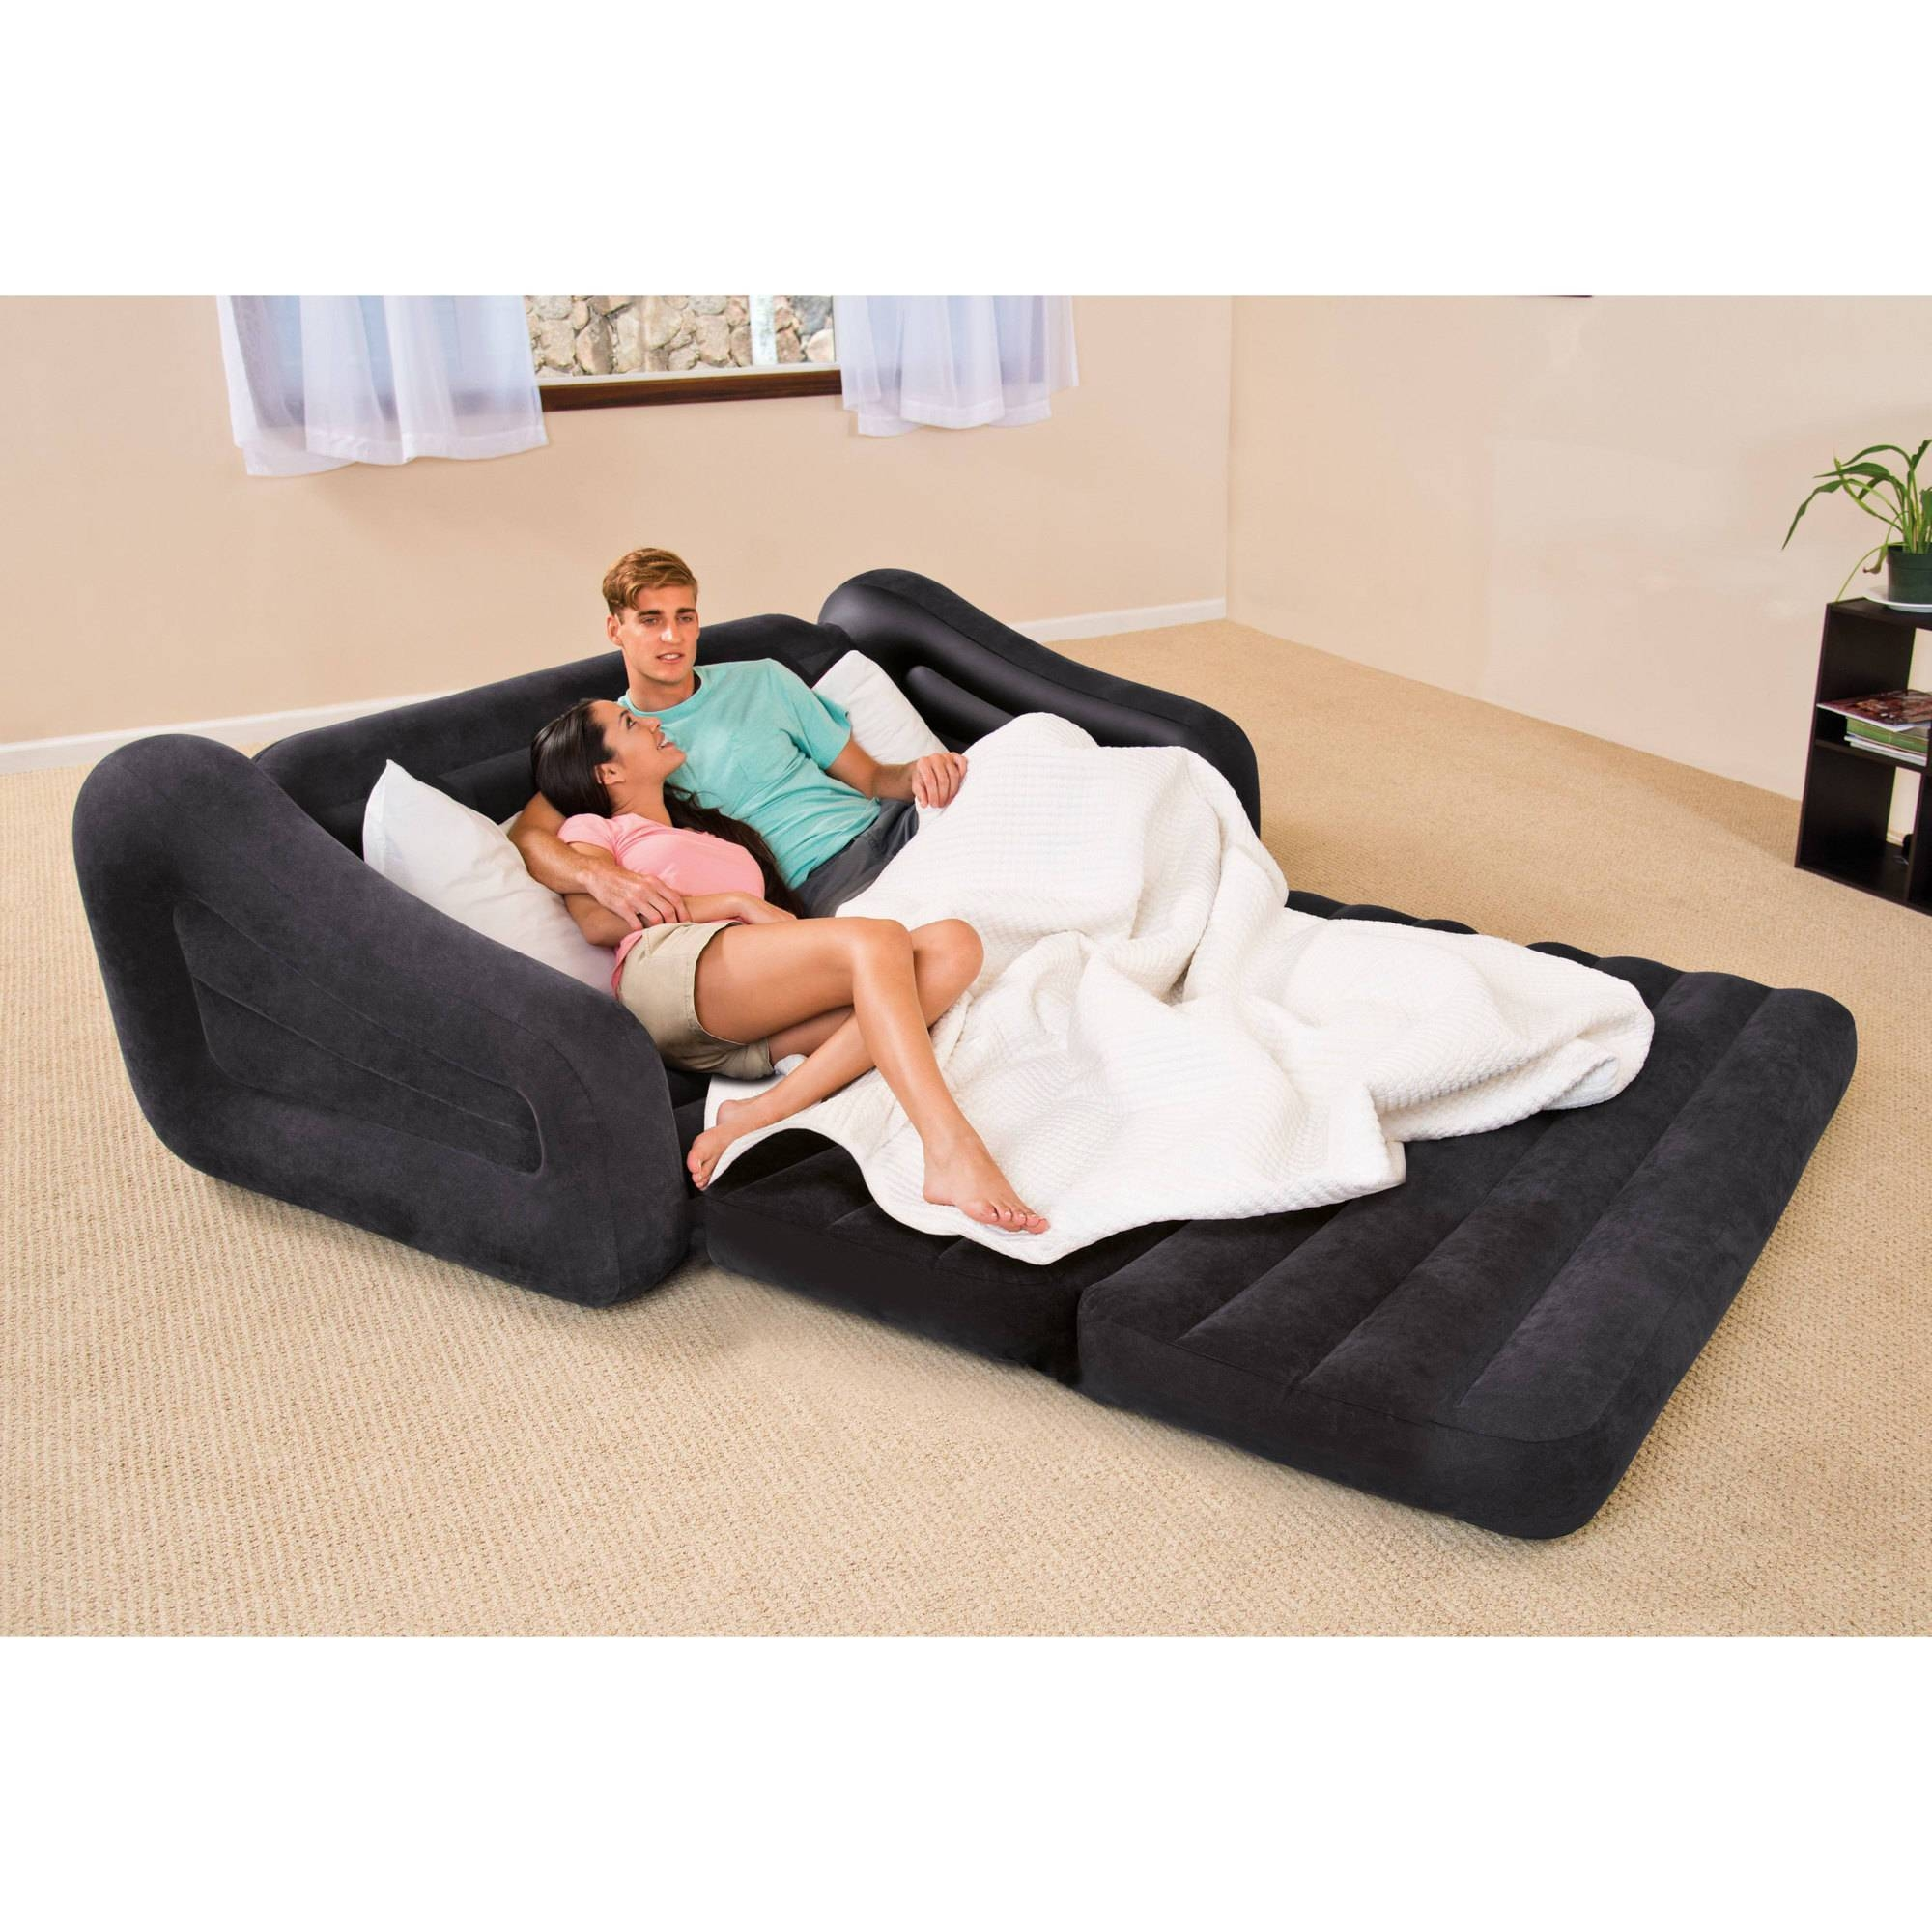 Intex Queen Inflatable Pull Out Sofa Bed - Walmart inside Intex Sleep Sofas (Image 13 of 15)